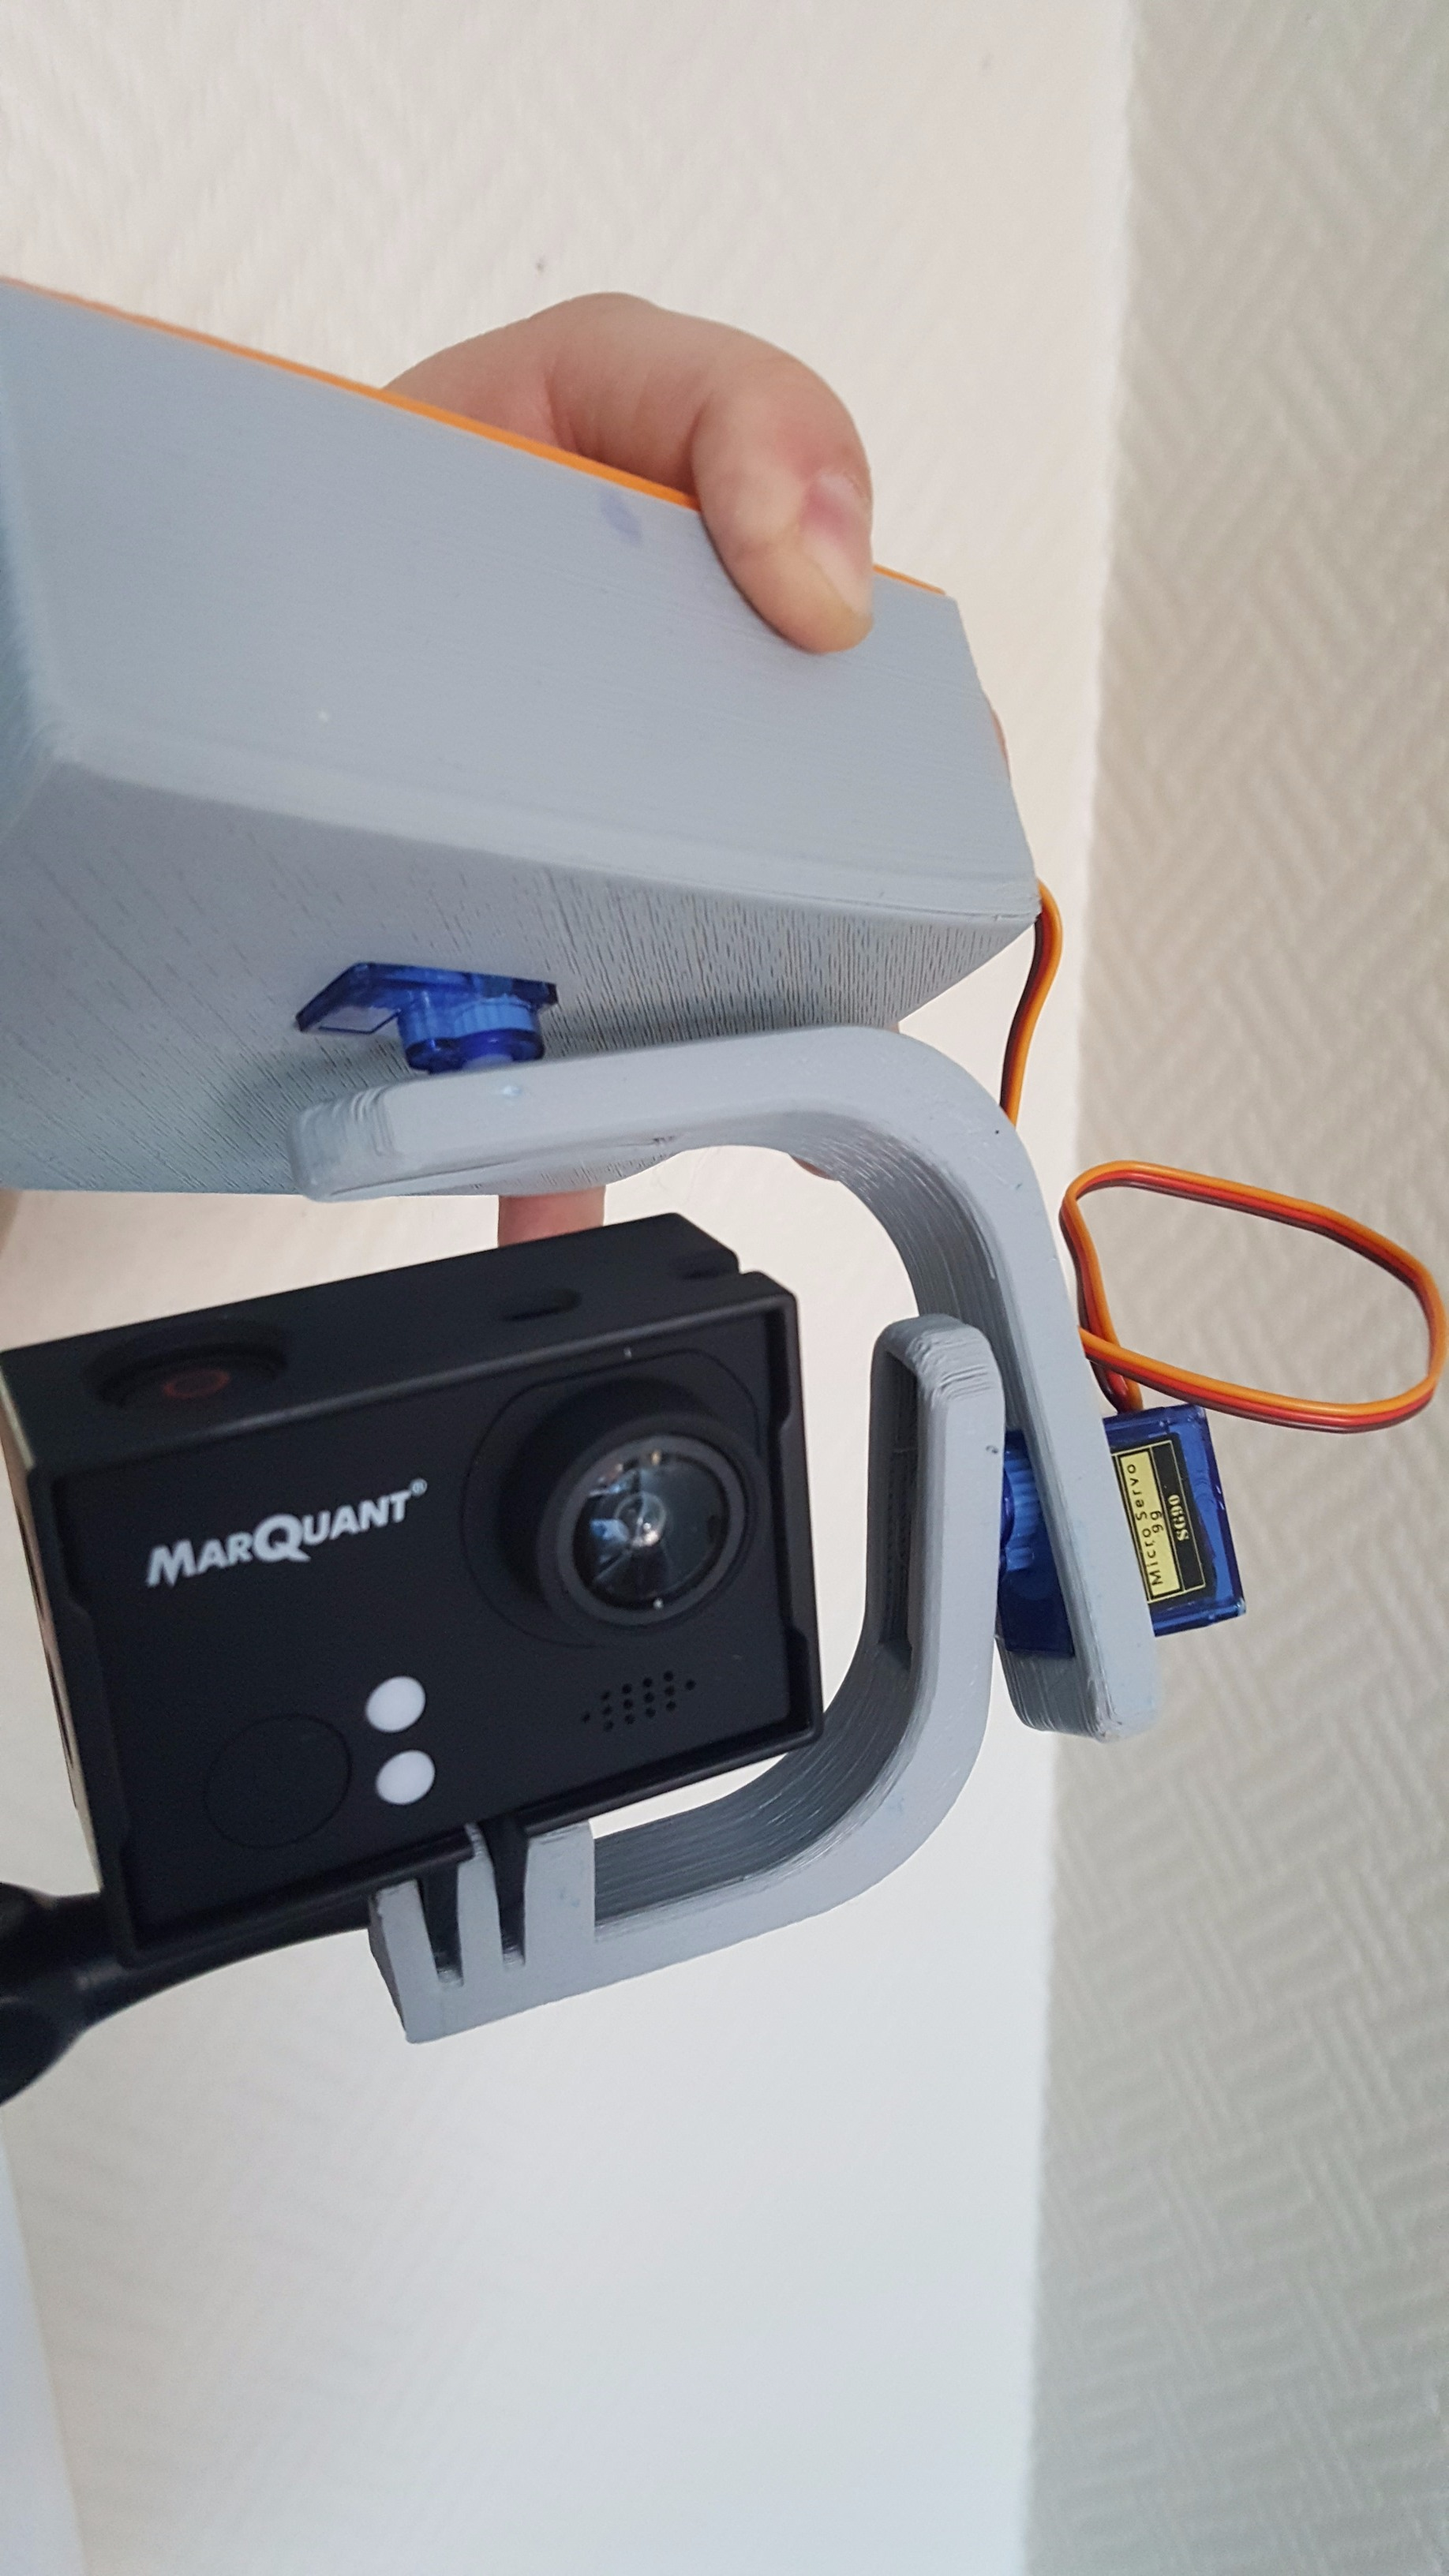 Arduino Gimbal With Micro Servos: 3 Steps (with Pictures)